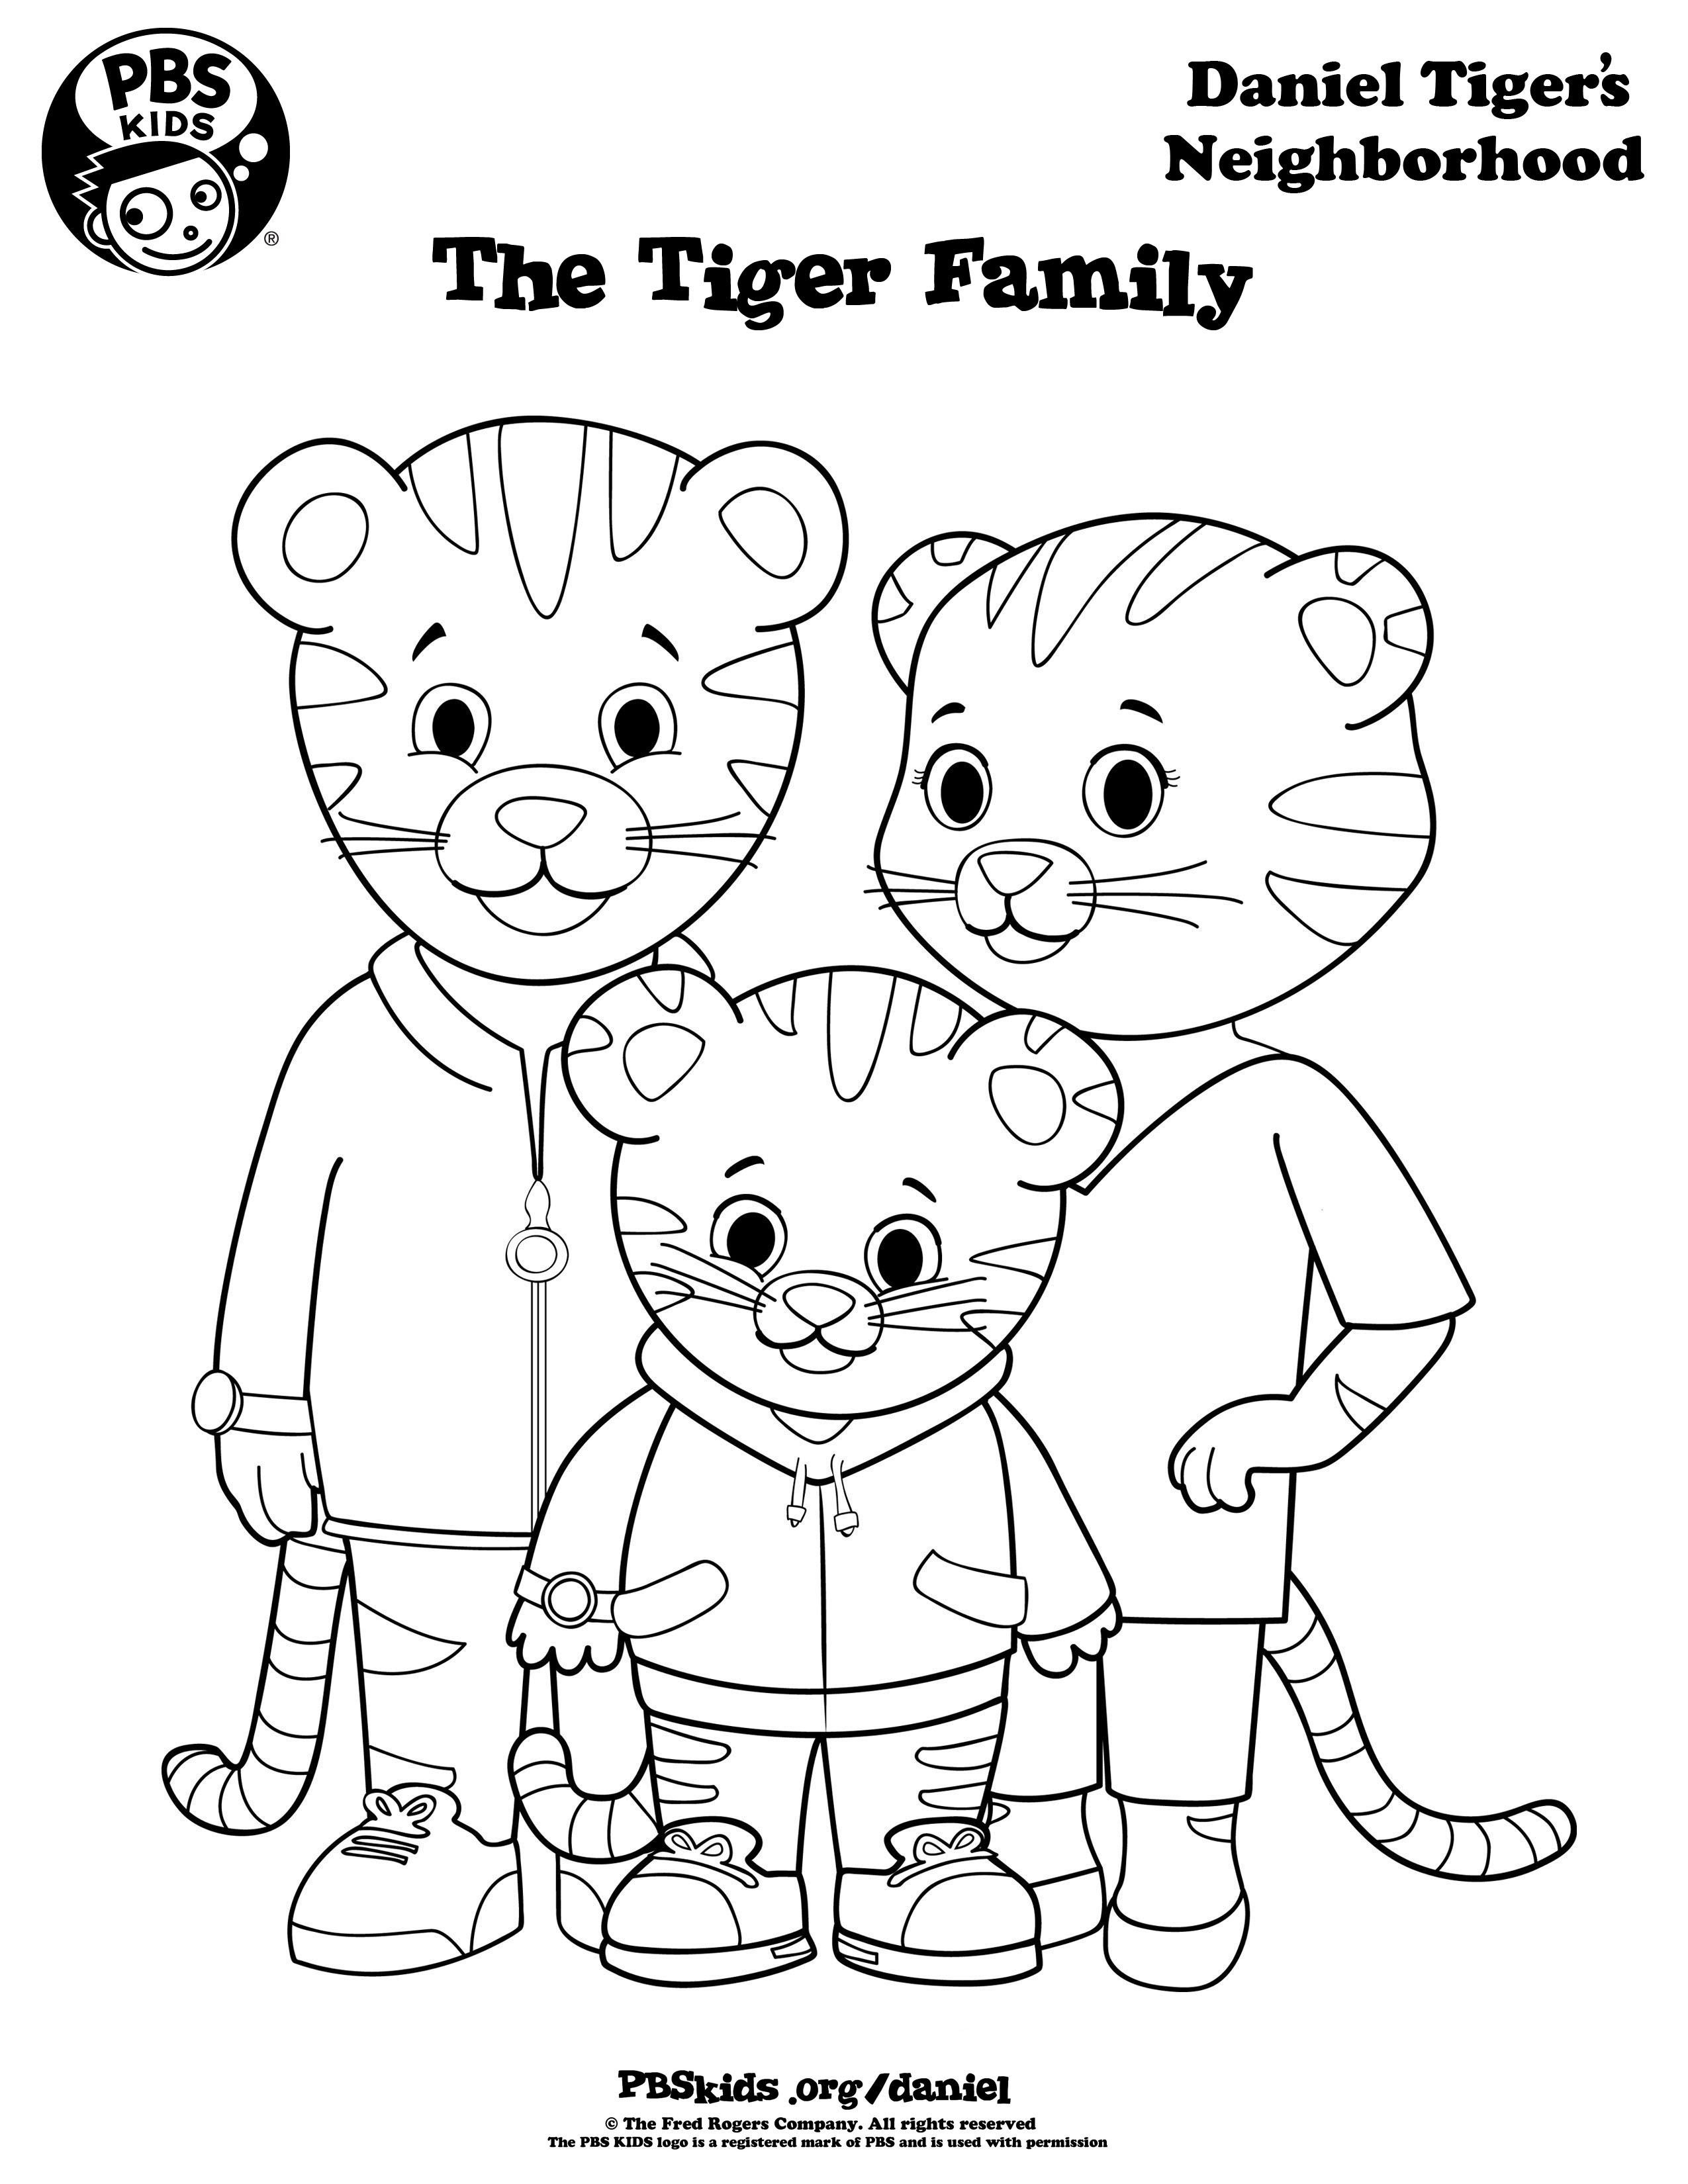 Print Out Grr-Rific Coloring Pages For Your Weekend Adventures - Free Printable Daniel Tiger Coloring Pages